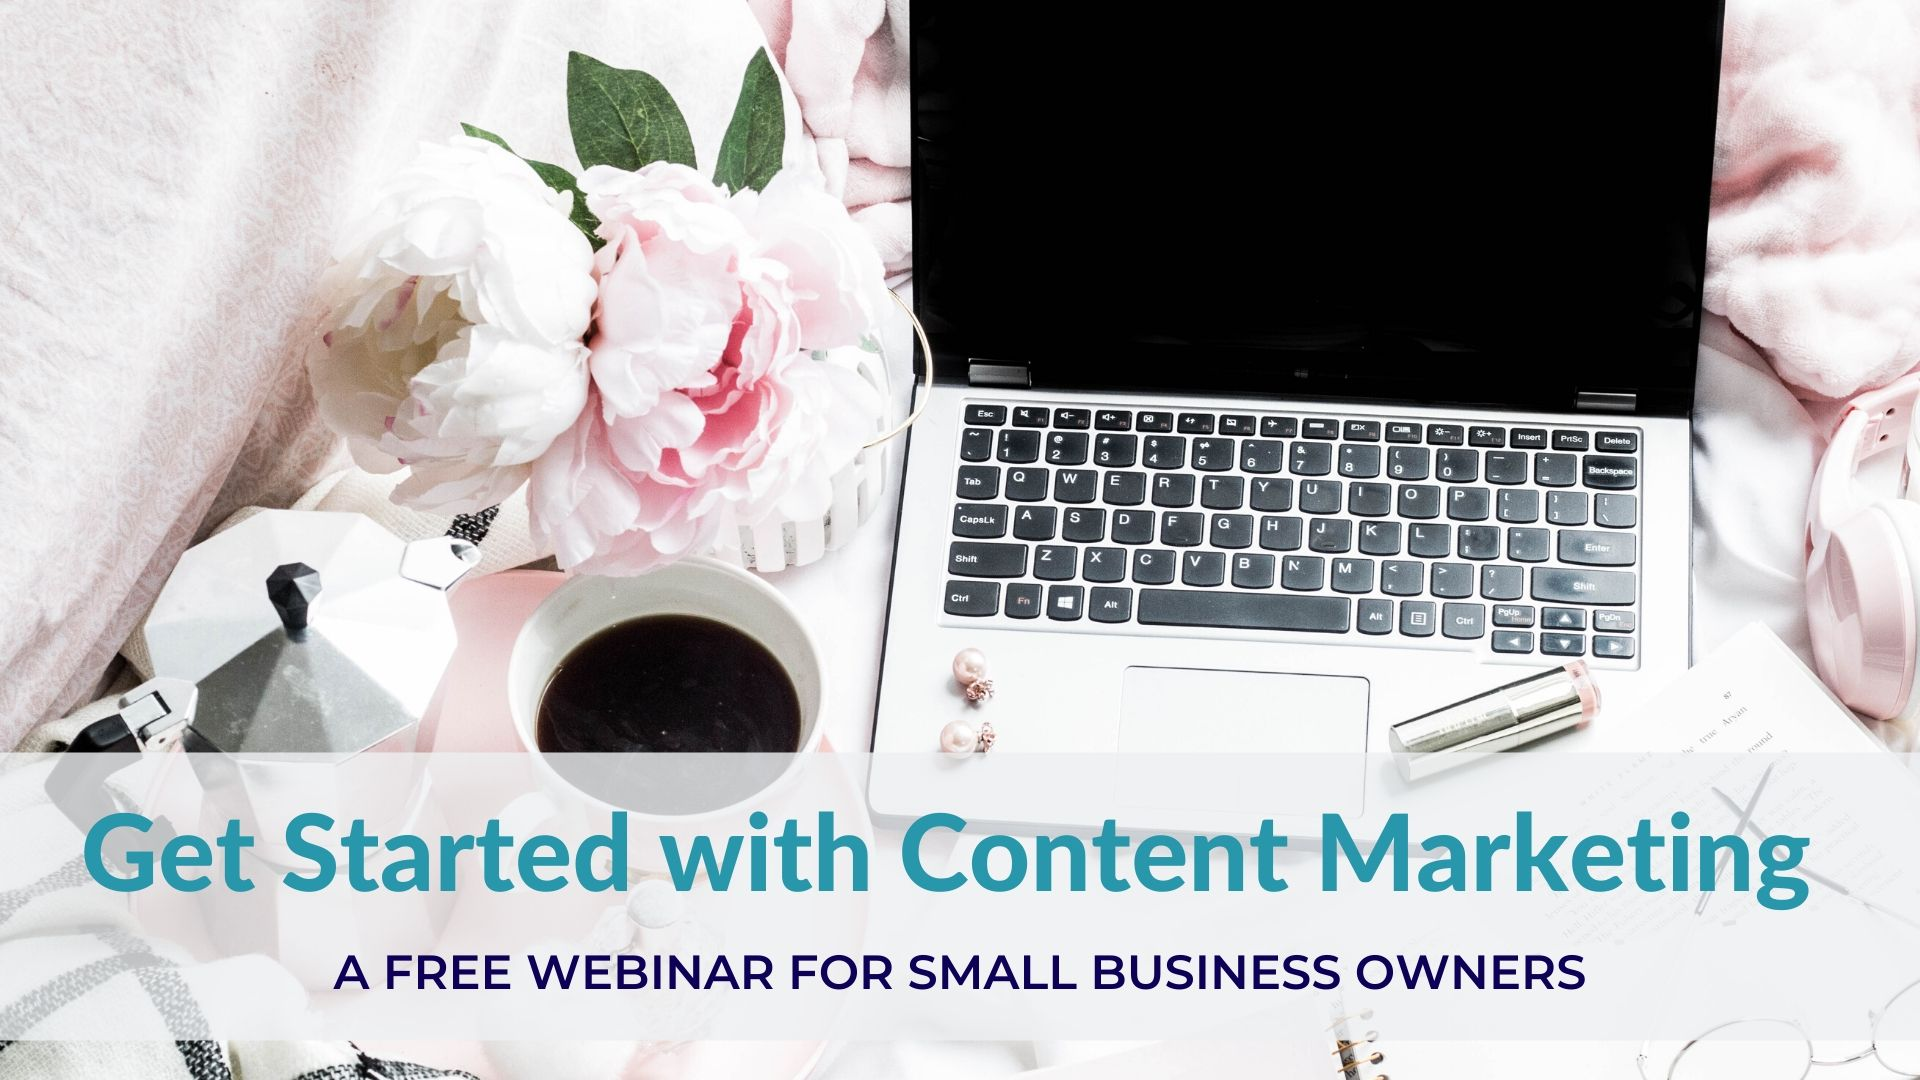 Getting Started with Content Marketing Free Webinar